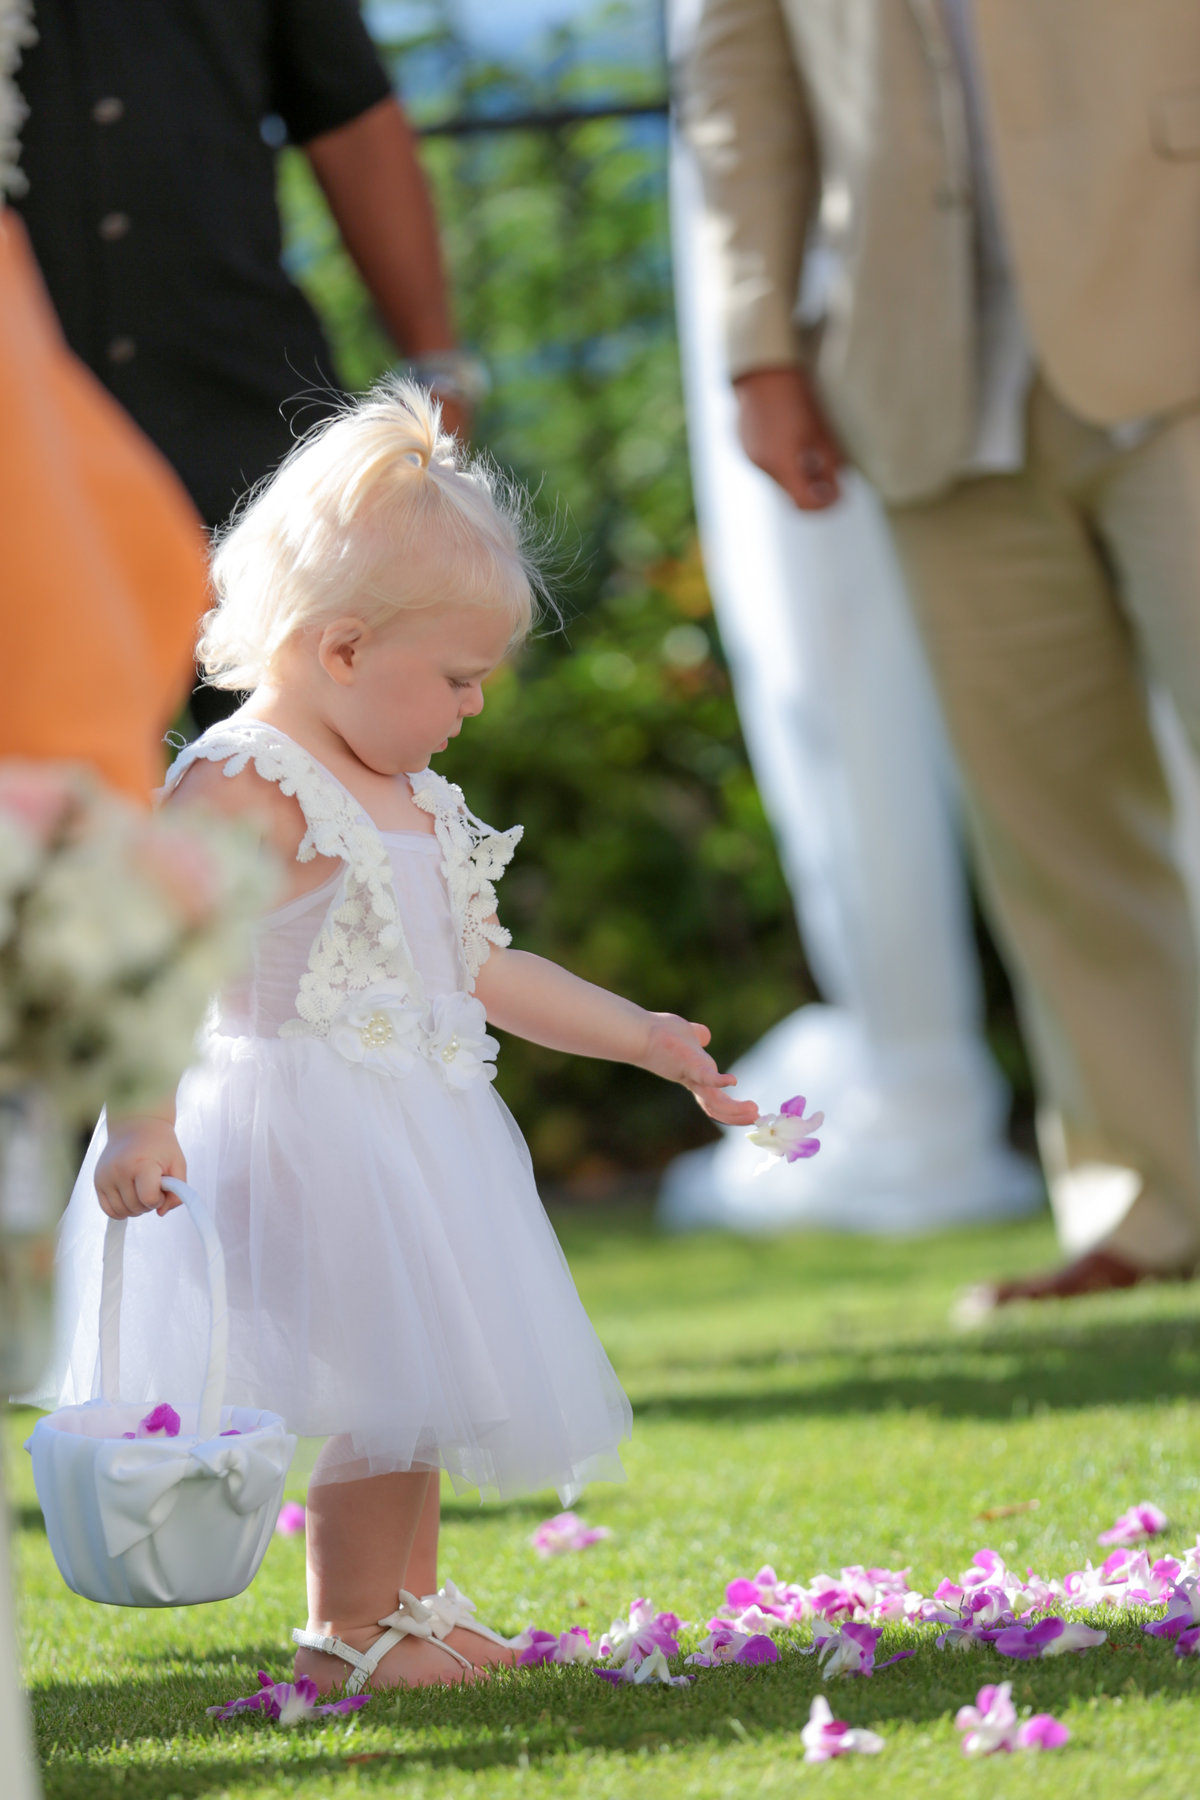 Bradenton-Sarasota Wedding Photography of the flower girl in the aisle